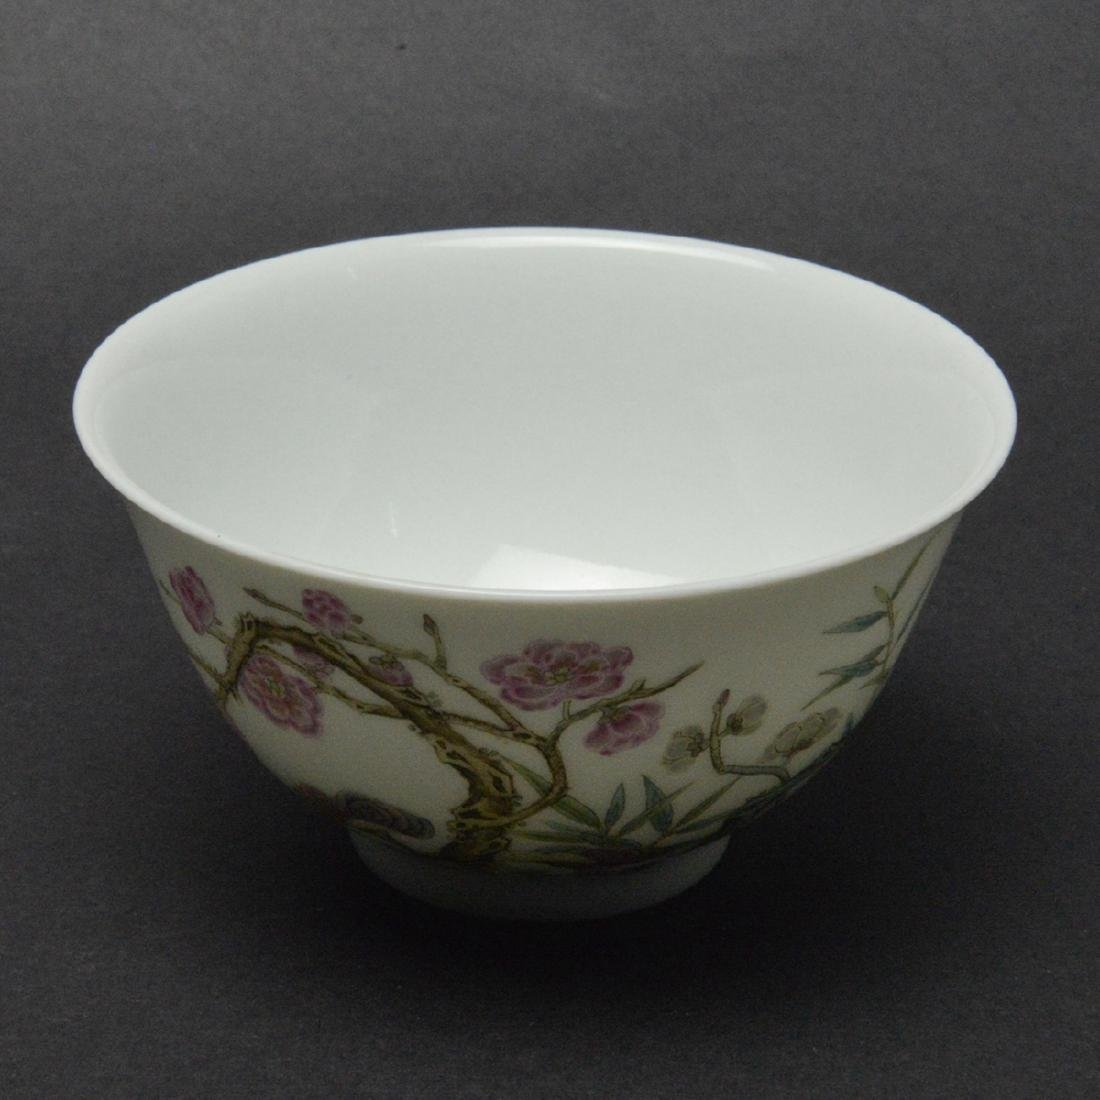 CHINESE FAMILLE ROSE PORCELAIN CUP - 3